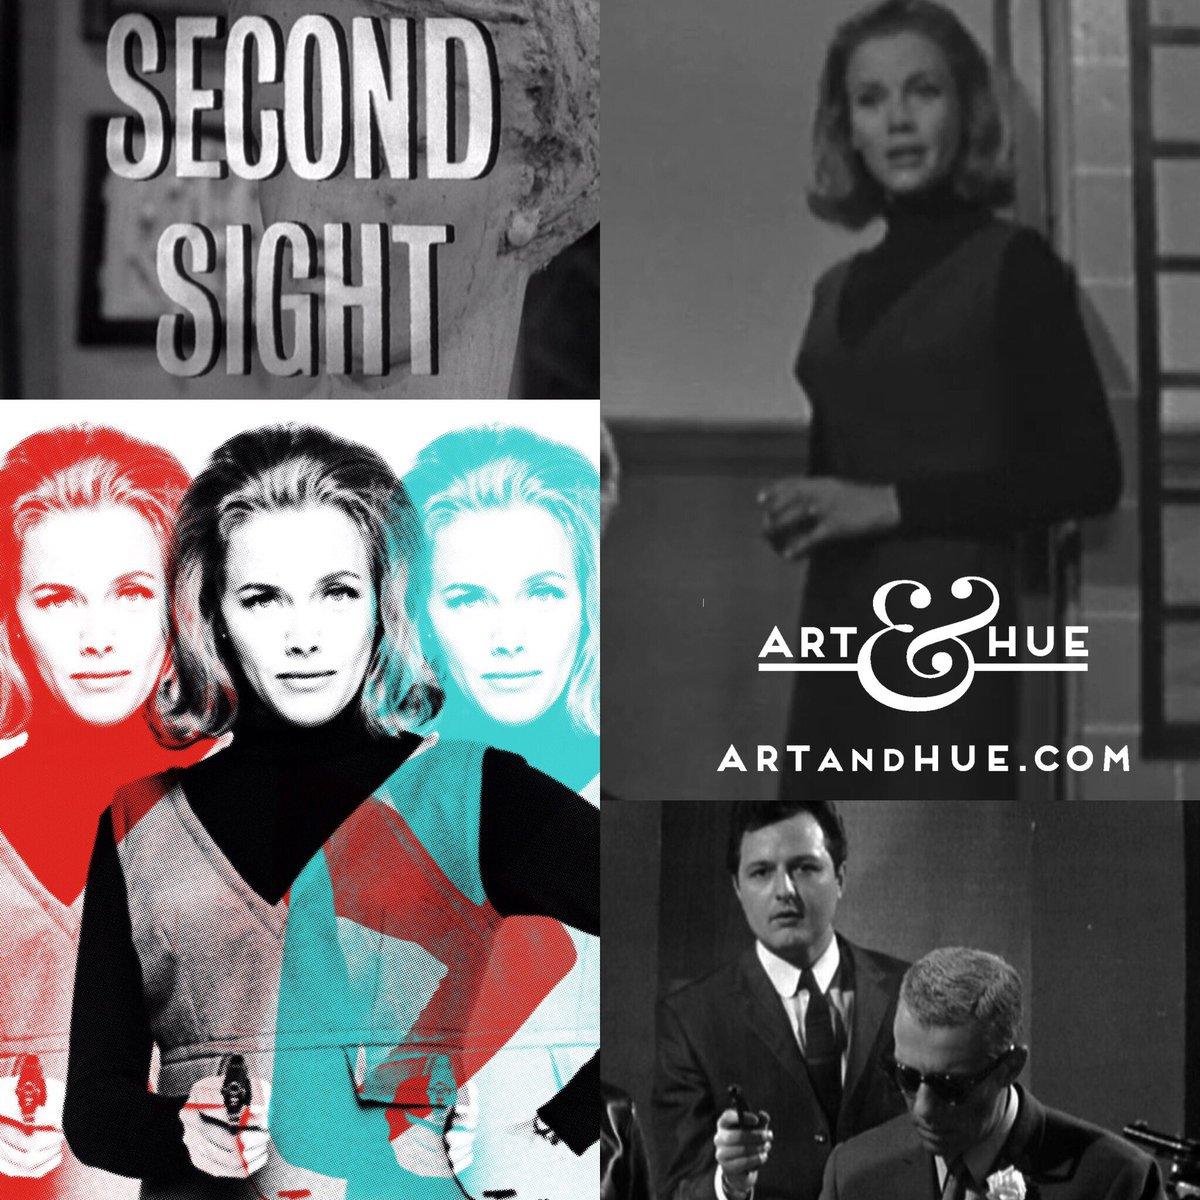 On this day in 1963 Filming wrapped on #TheAvengers episode #SecondSight  http:// artandhue.com/theavengers  &nbsp;   #honorblackman  #patrickmacnee #JohnSteed<br>http://pic.twitter.com/XTSXiB111v